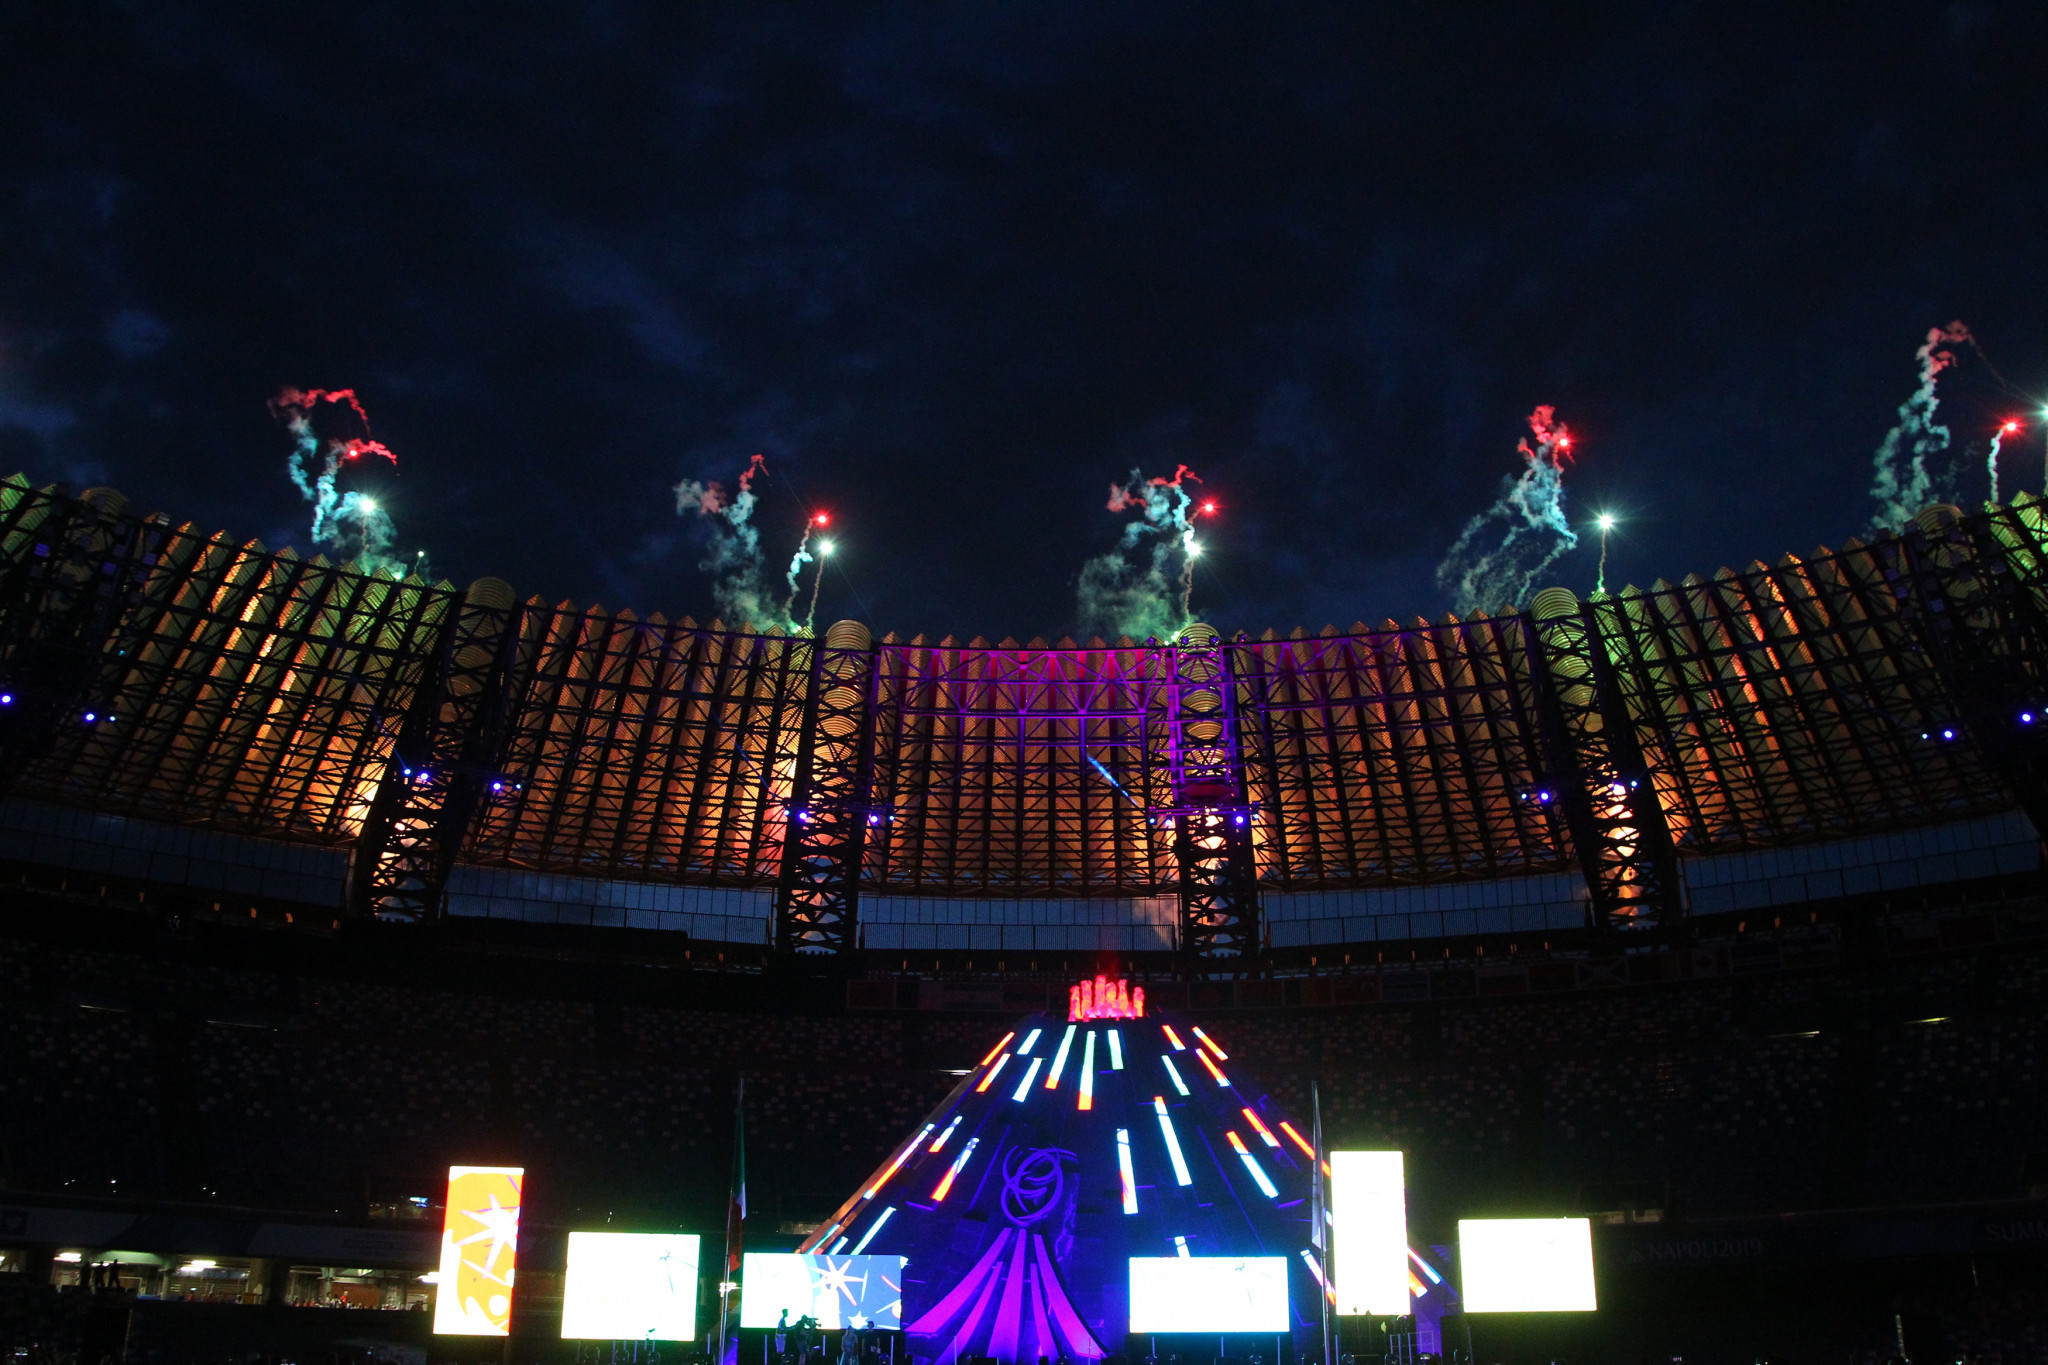 Naples puts on a party at 2019 Summer Universiade Closing Ceremony